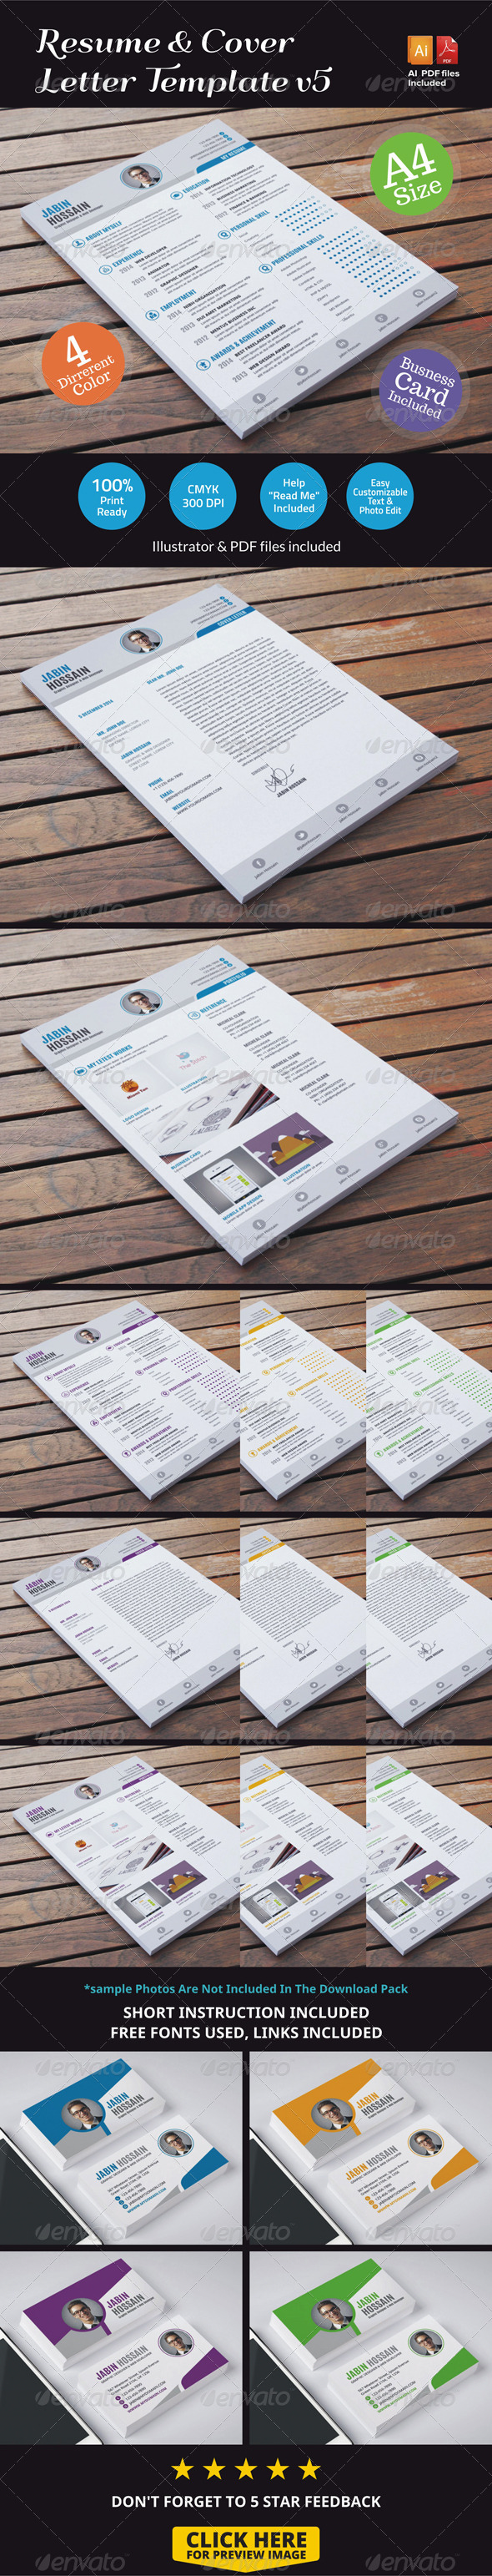 GraphicRiver Resume & Cover Letter Template v5 7099134